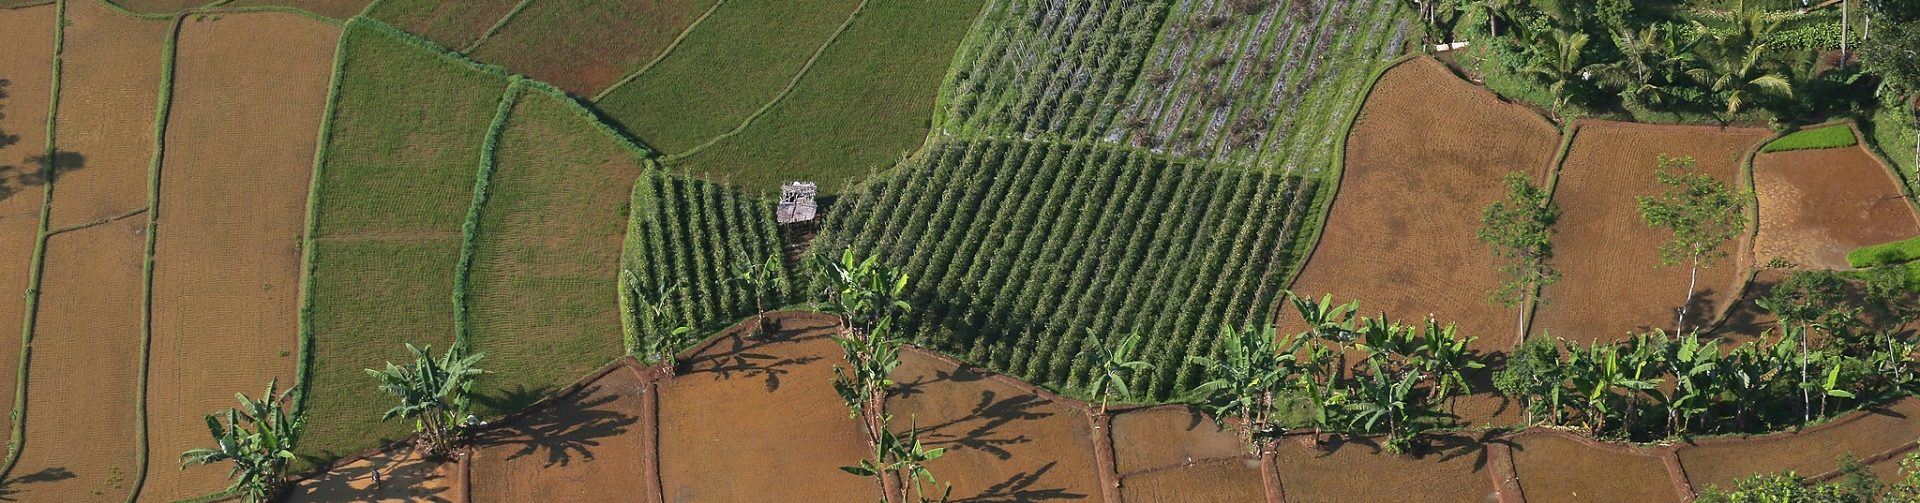 Achieving sustainable agricultural practices: From incentives to adoption and outcomes